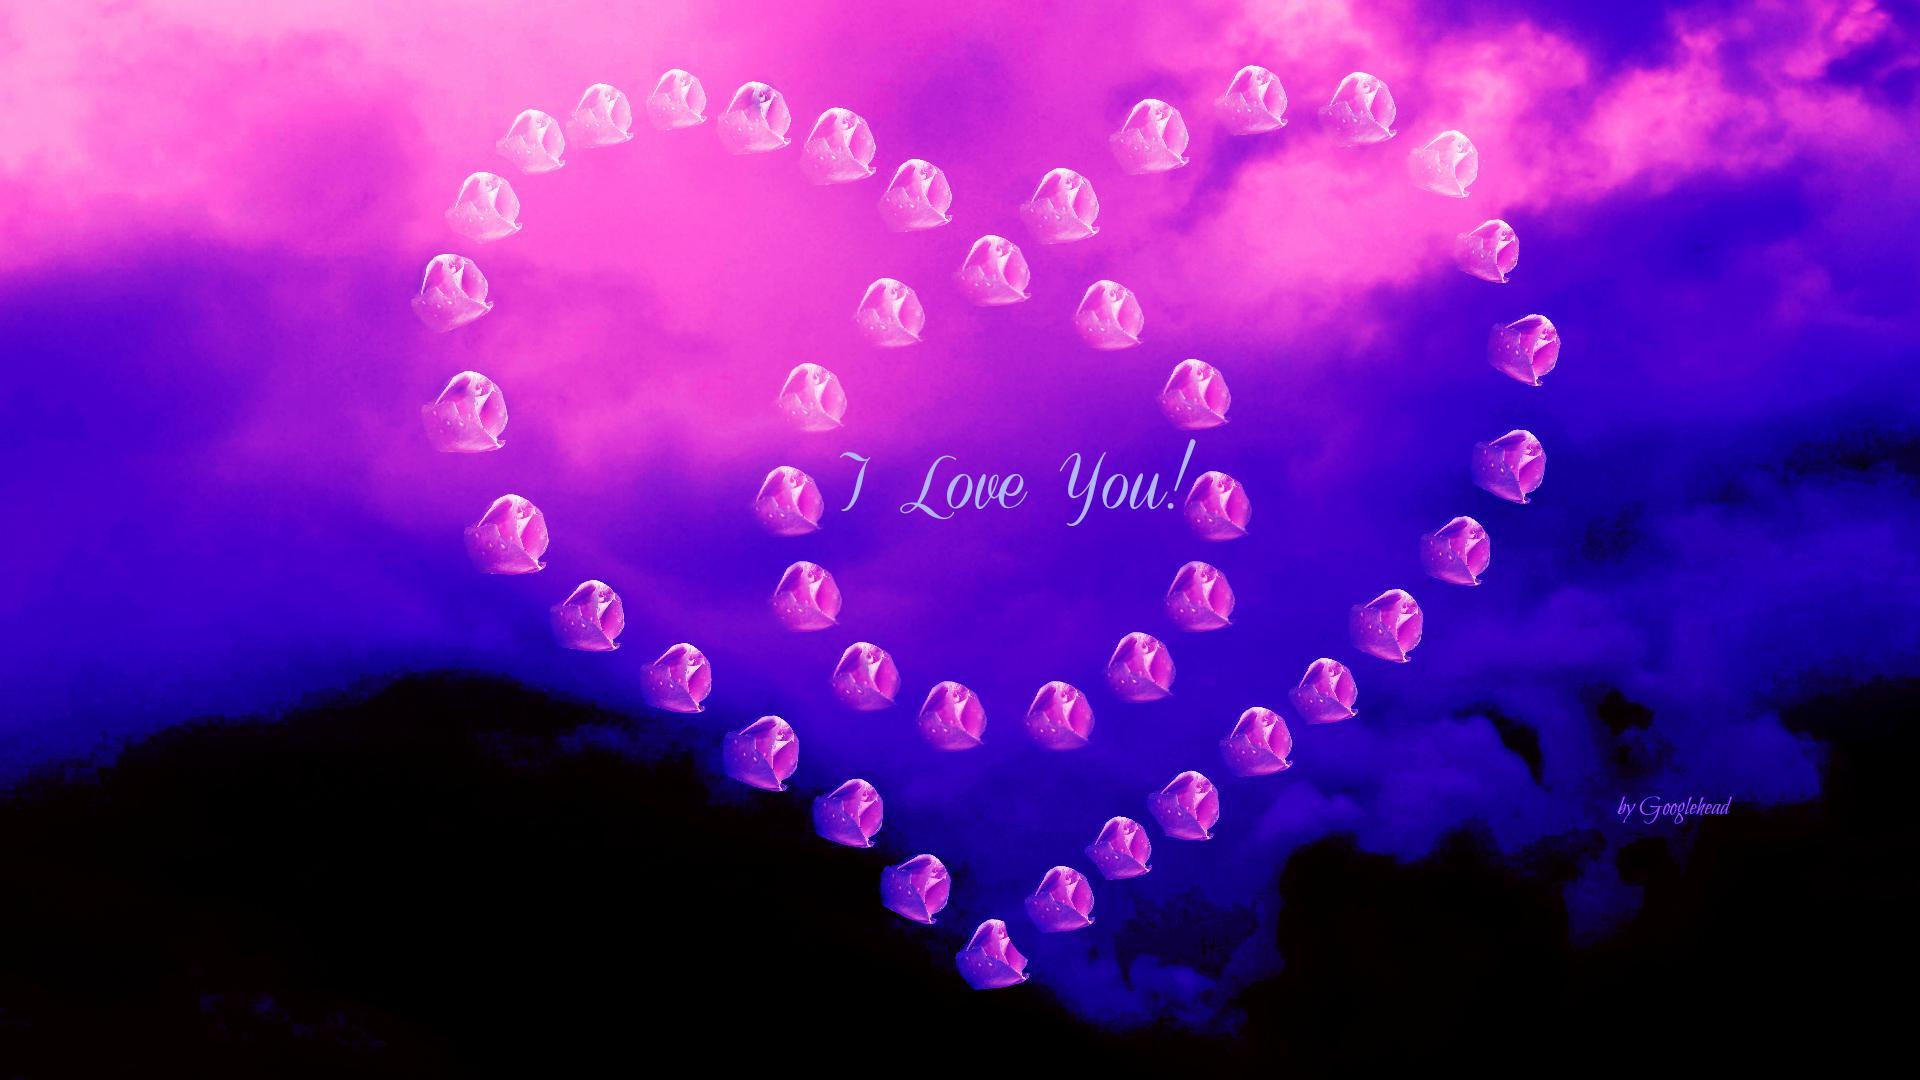 I Love You Best Wallpaper